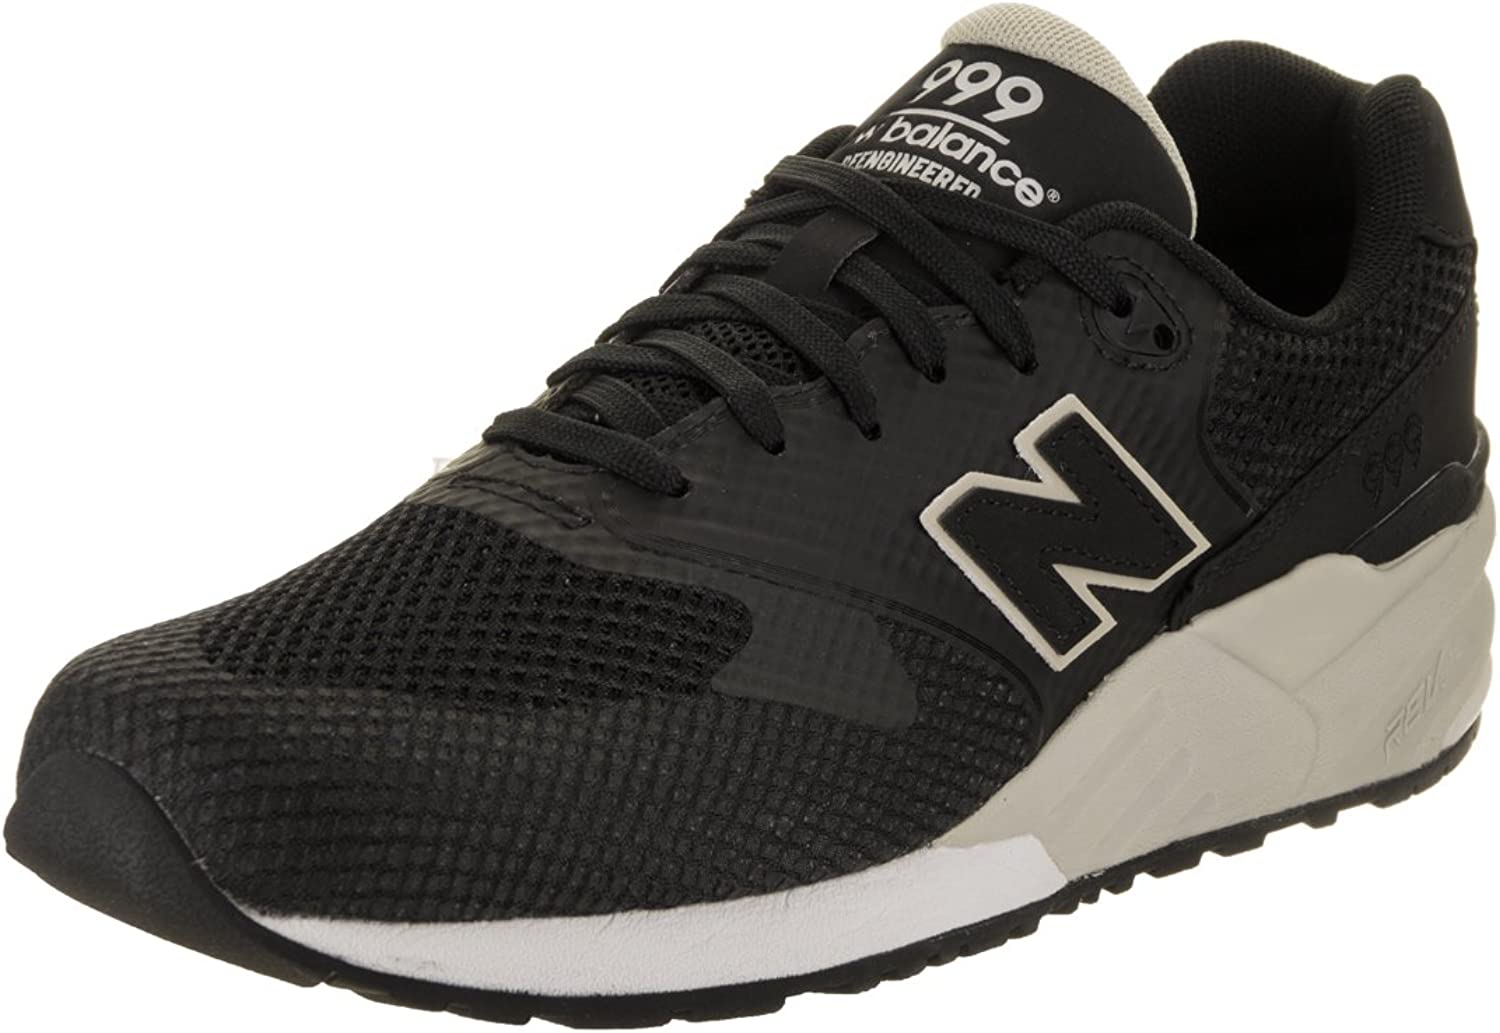 New Balance Lifestyle 999 unisex adults, canvas, low-top